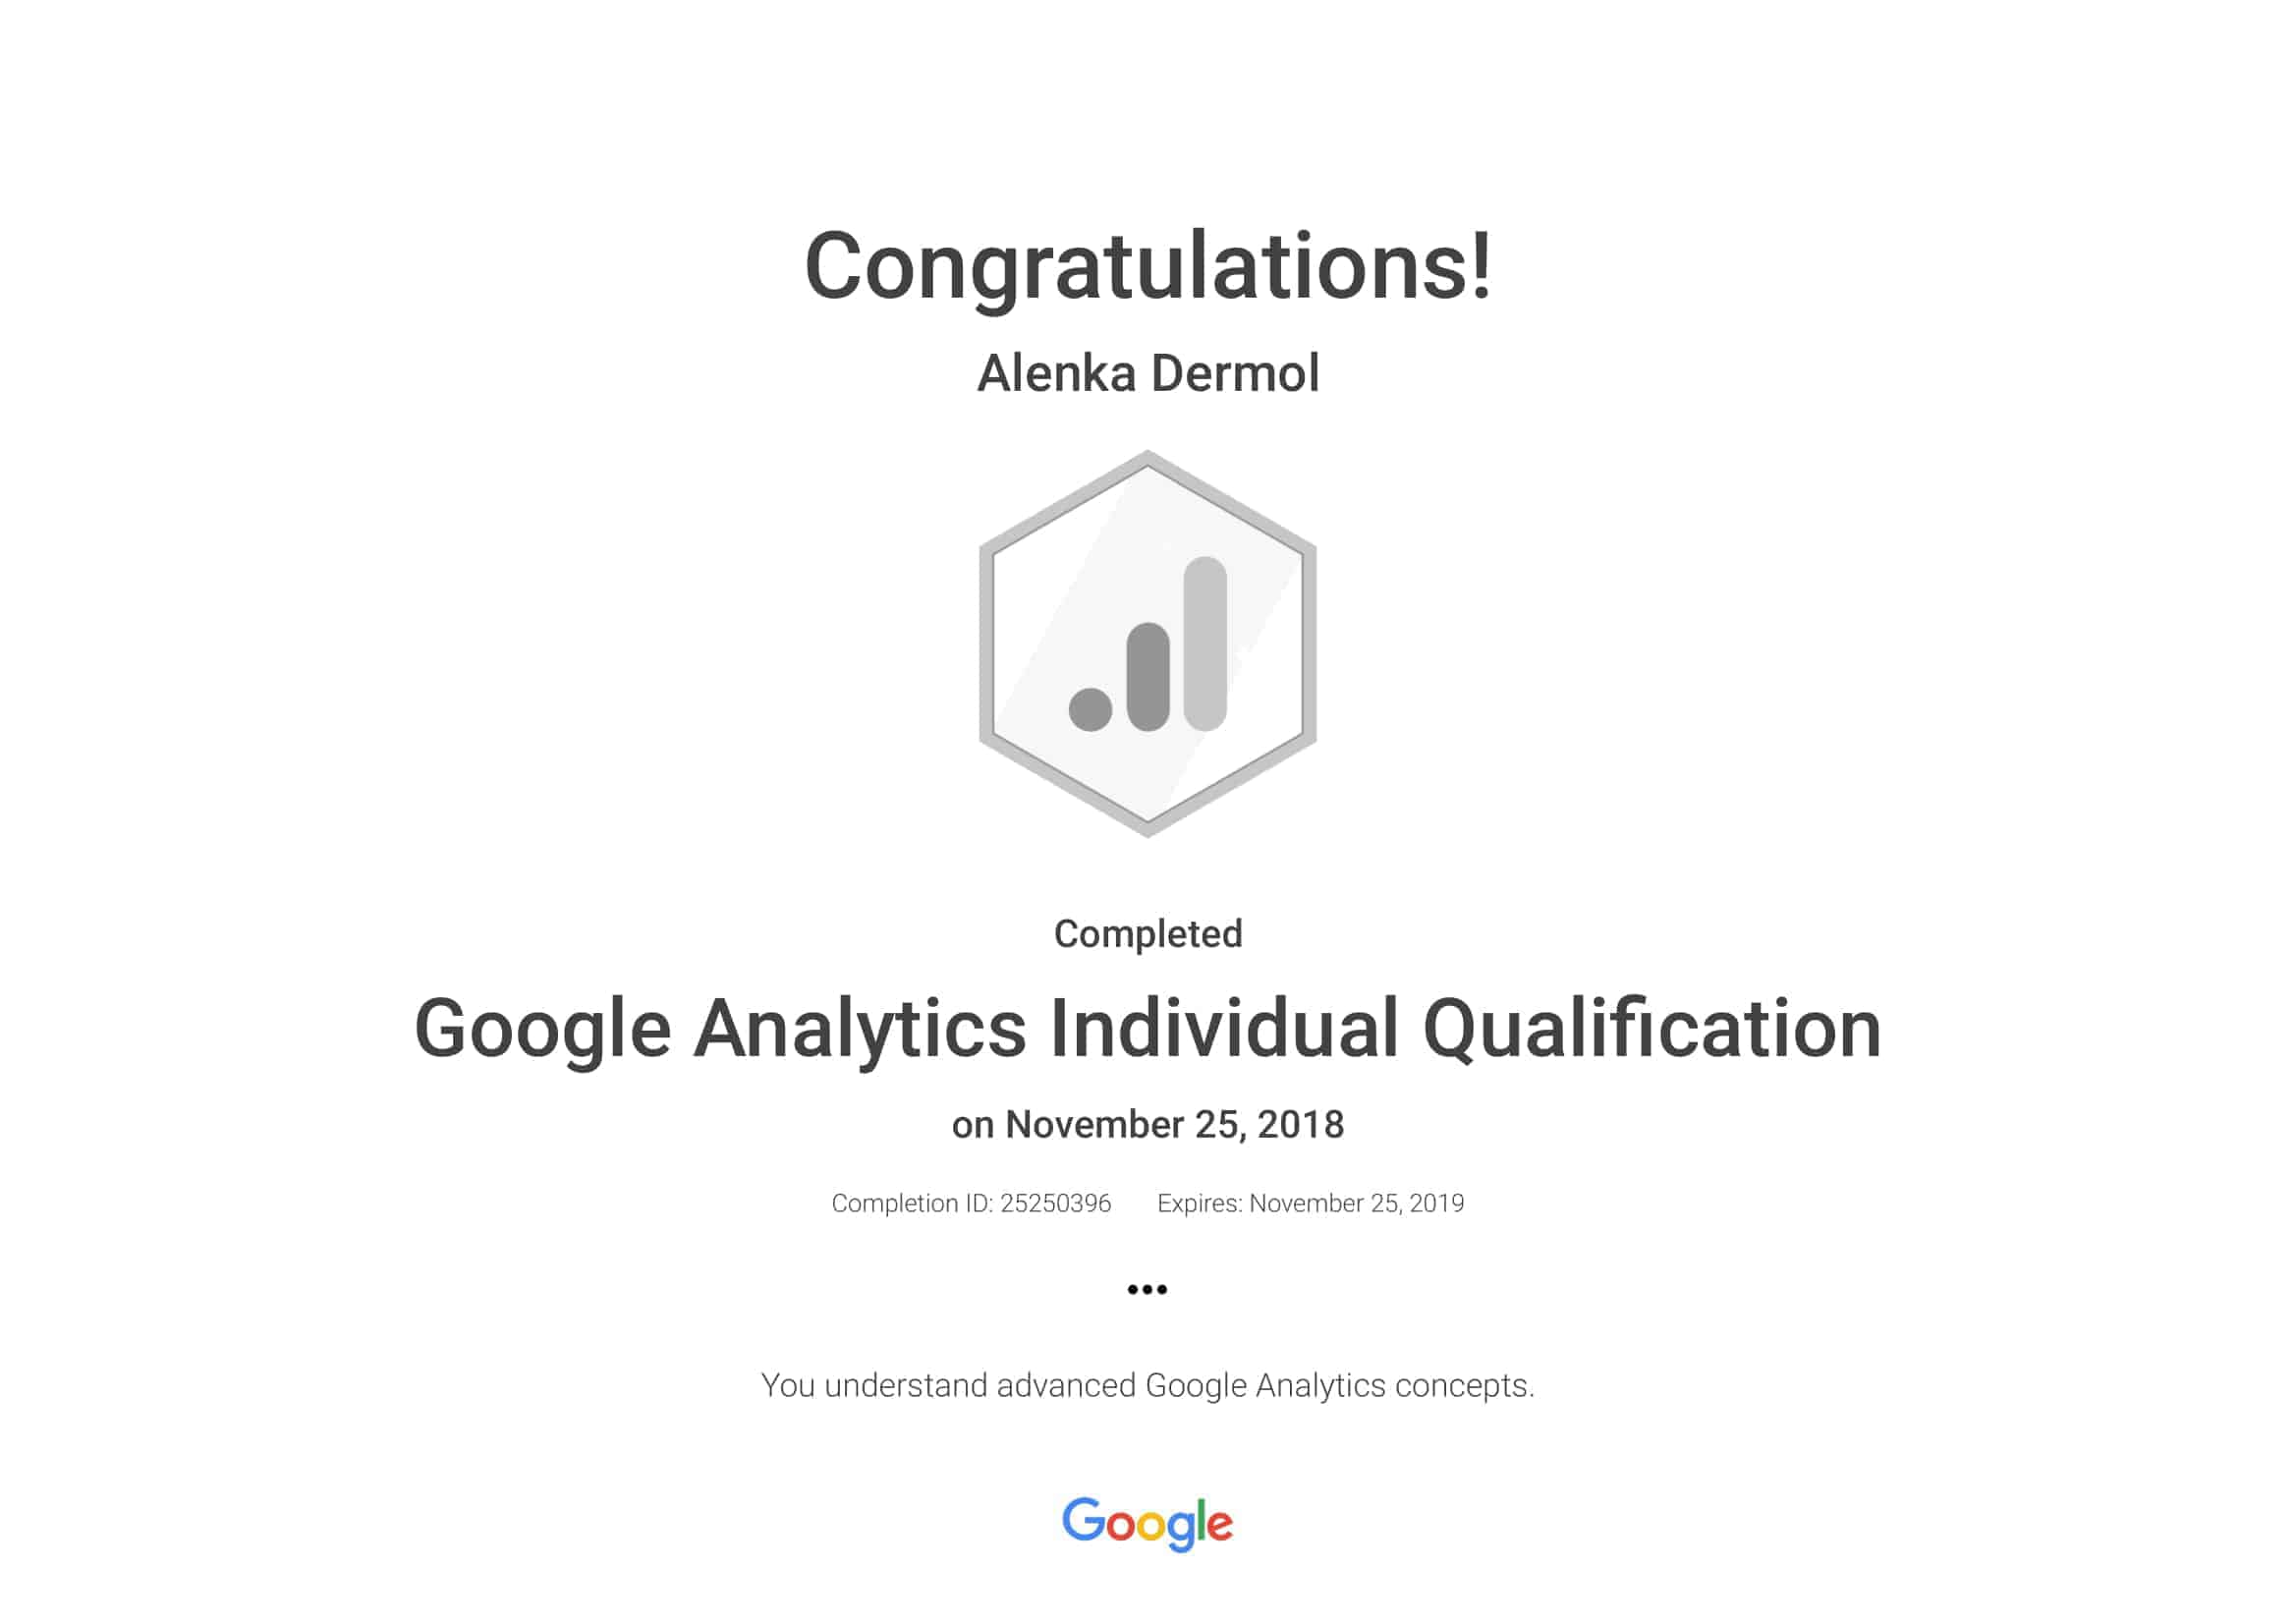 Google-Analytics-Individual-Qualification-Alenka-Dermol